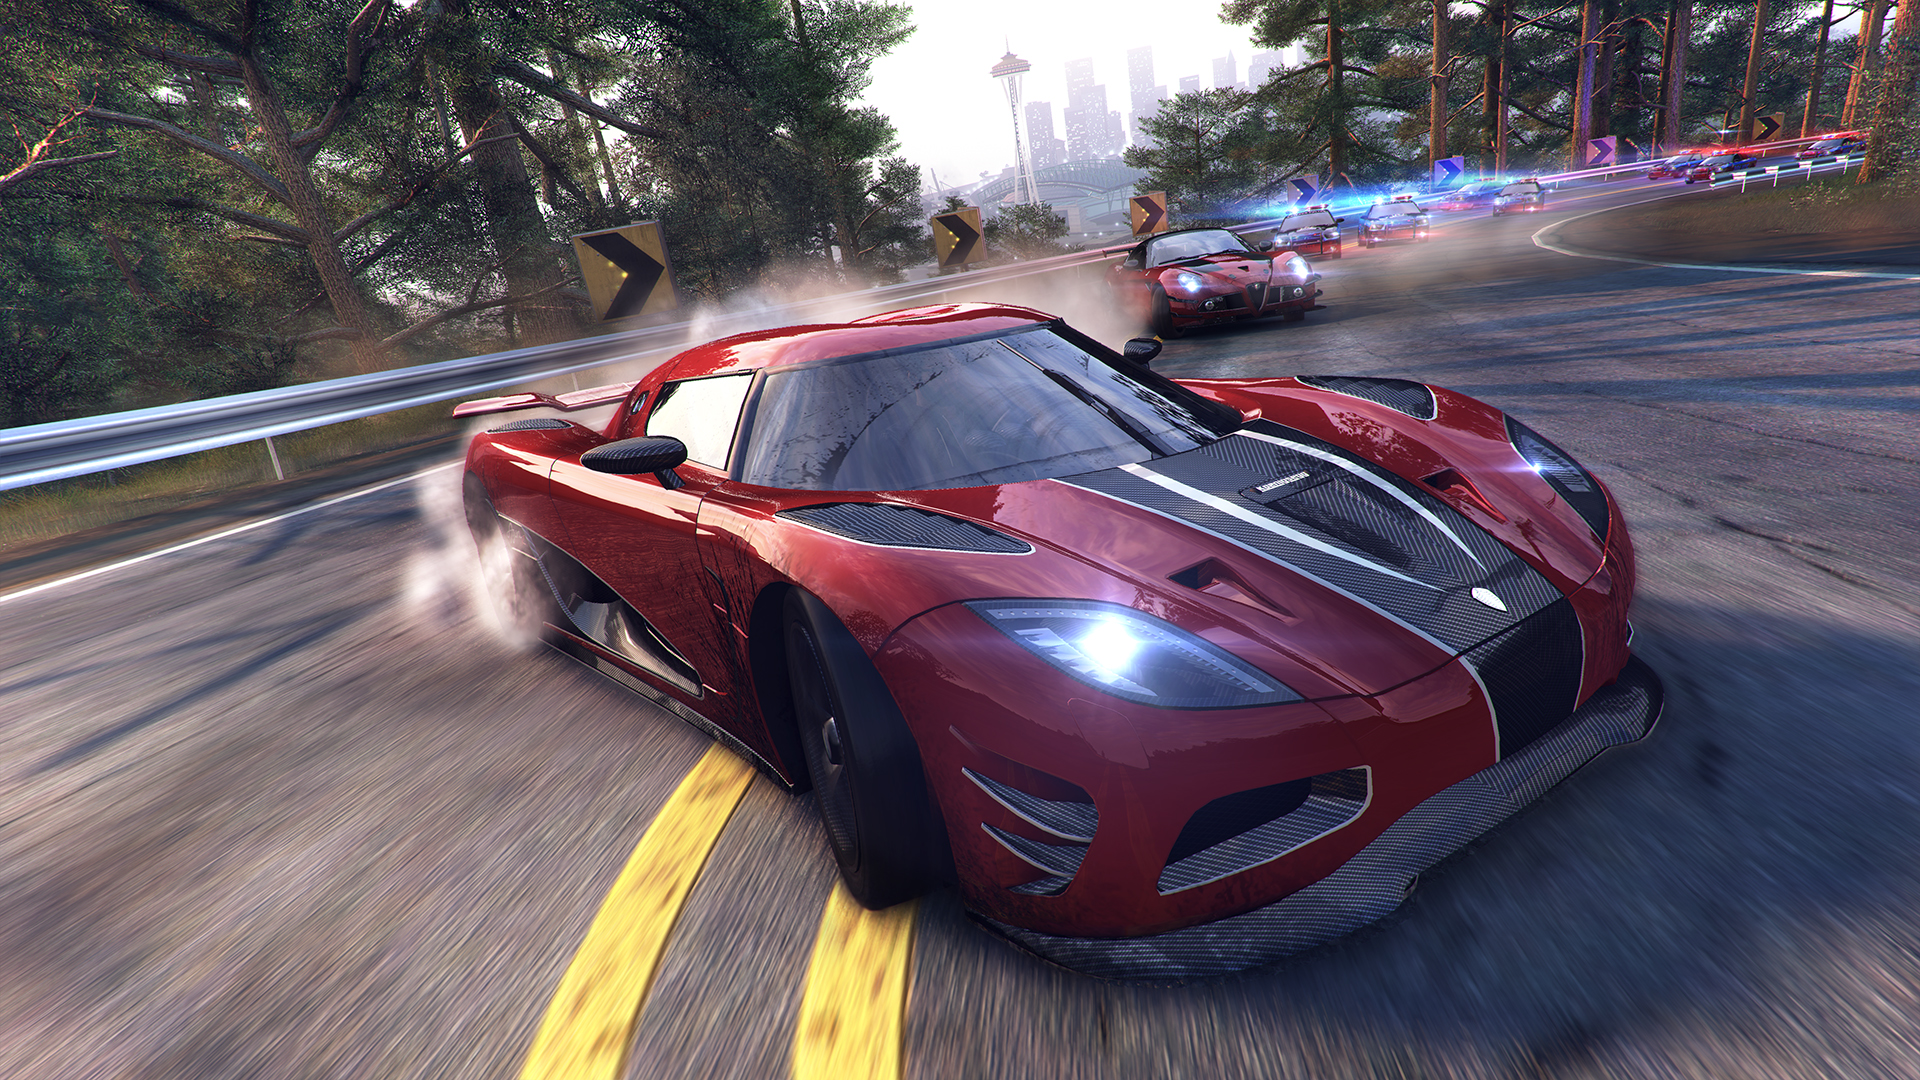 Ubisoft warns players not to trust early reviews of The Crew